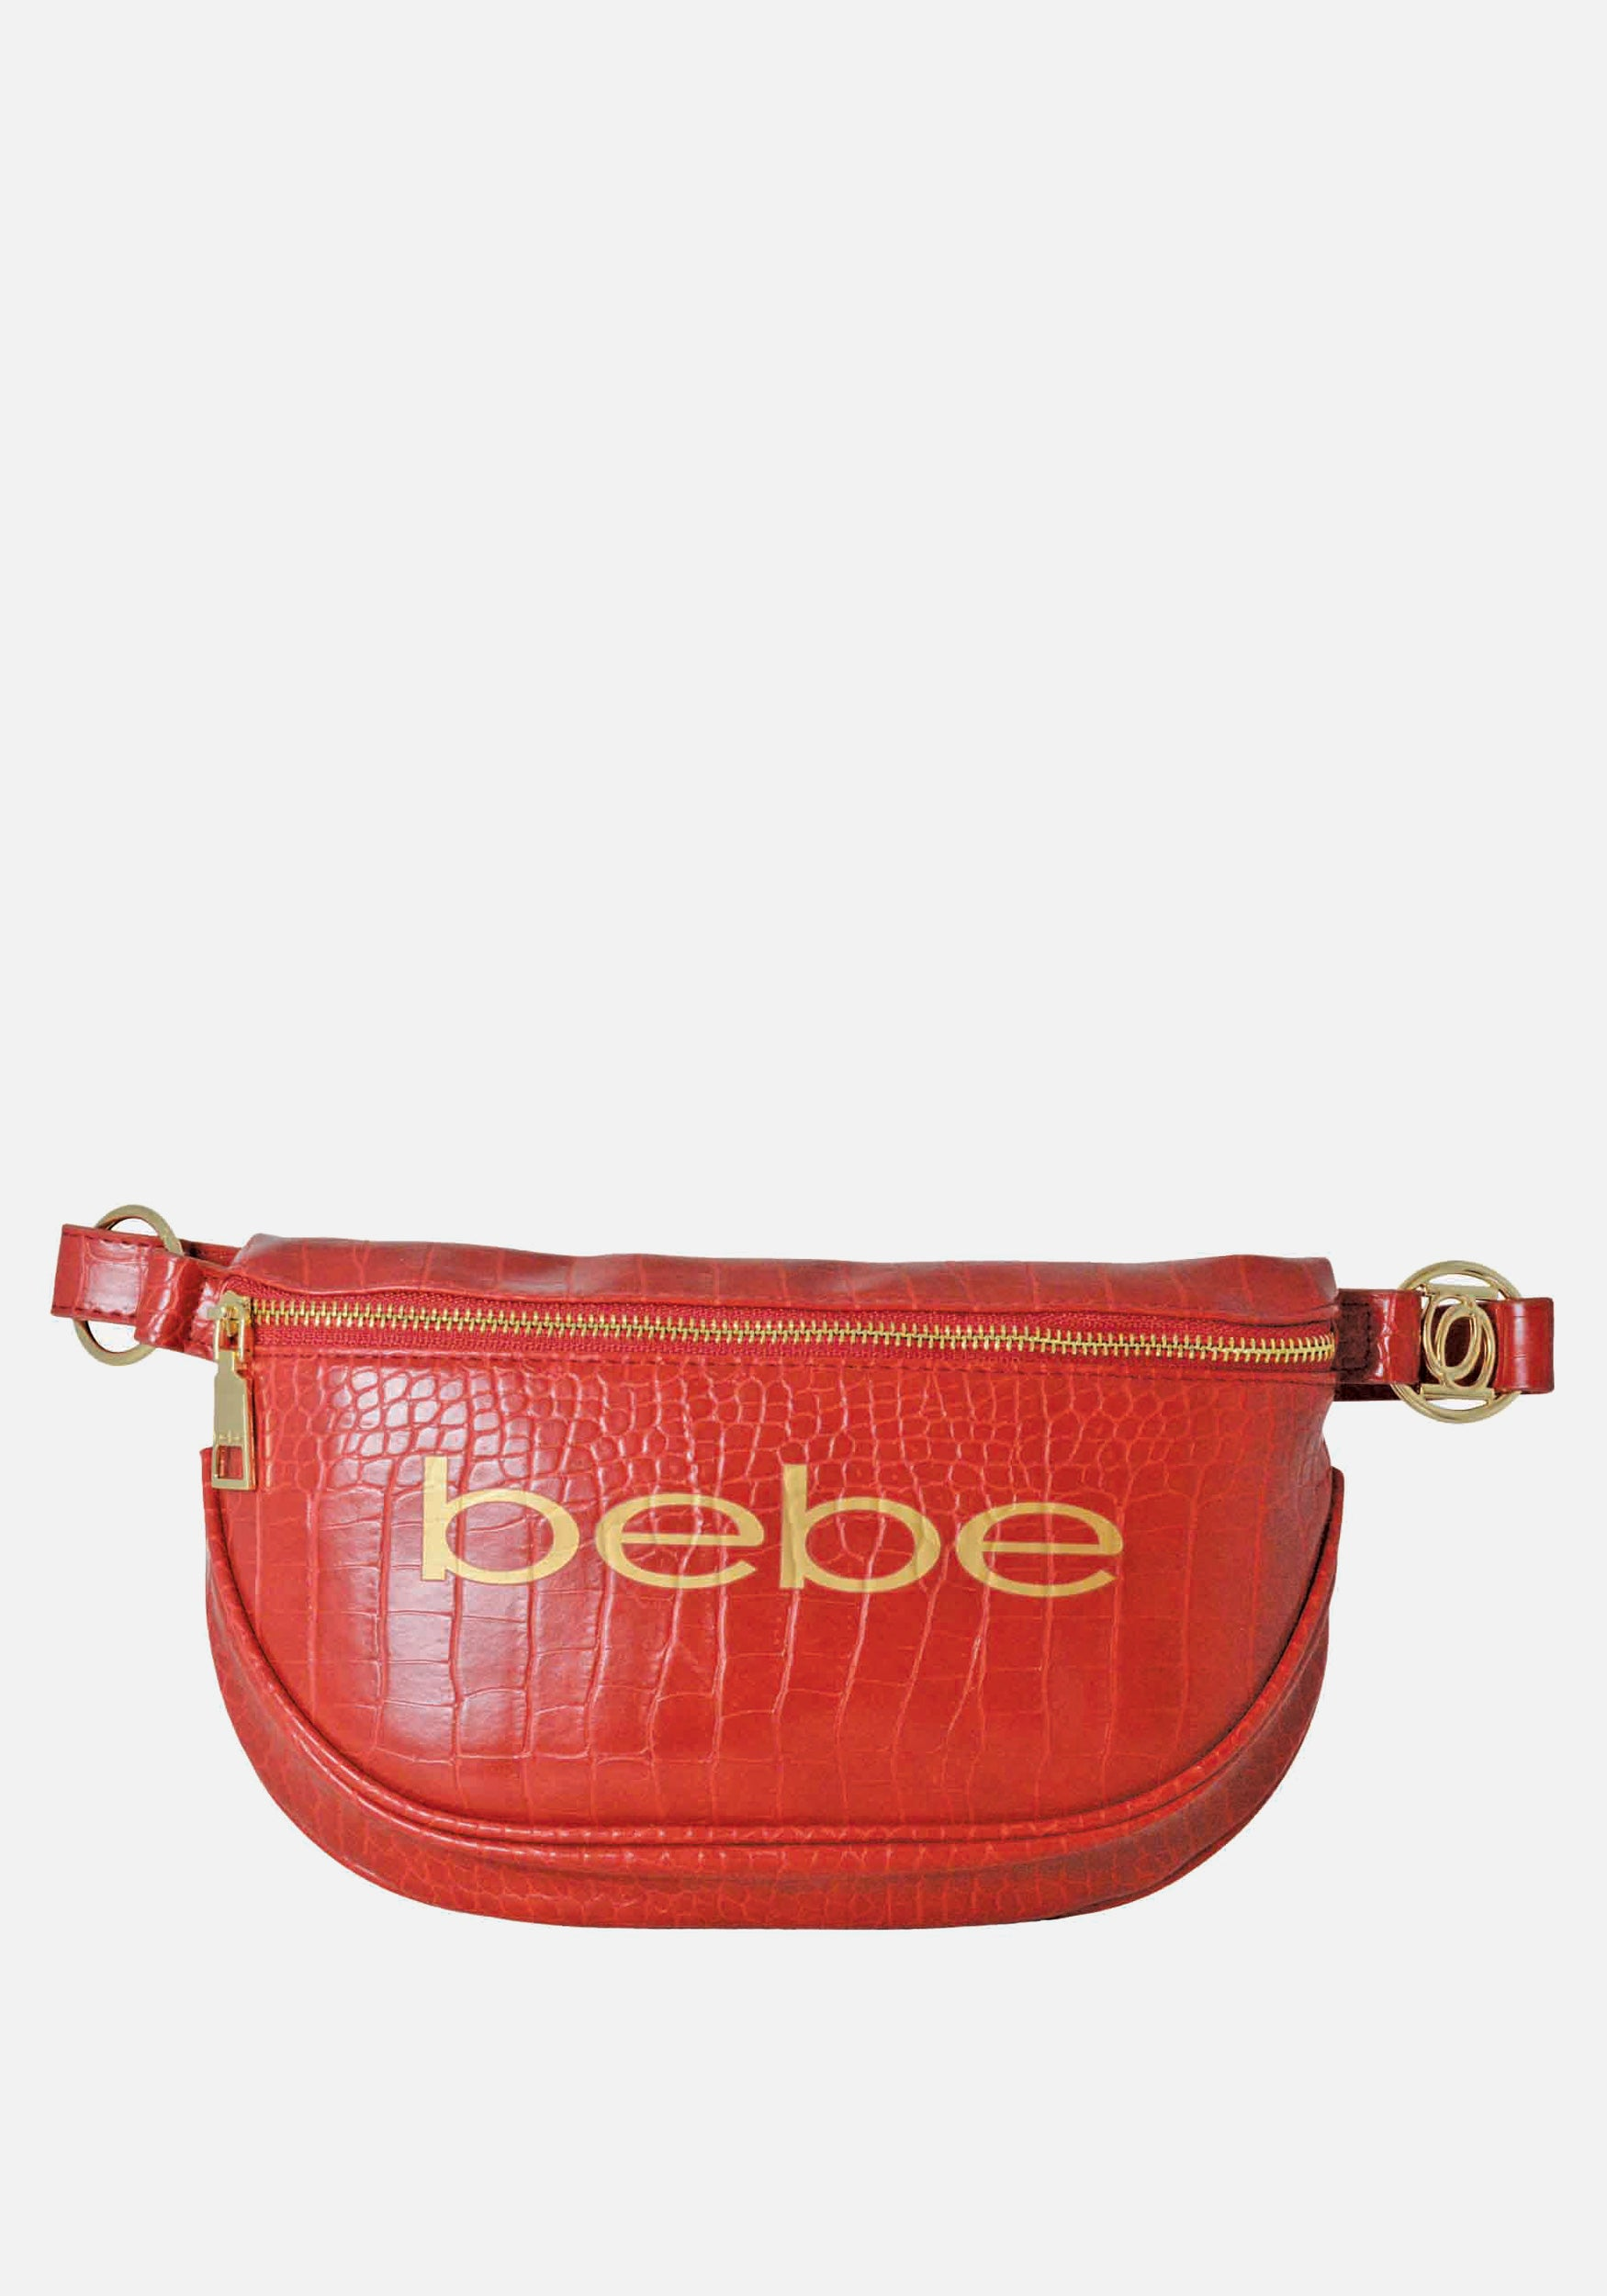 Bebe coupon: Bebe Women's Josephine Croco Convertible Sling in Candy Apple Polyester